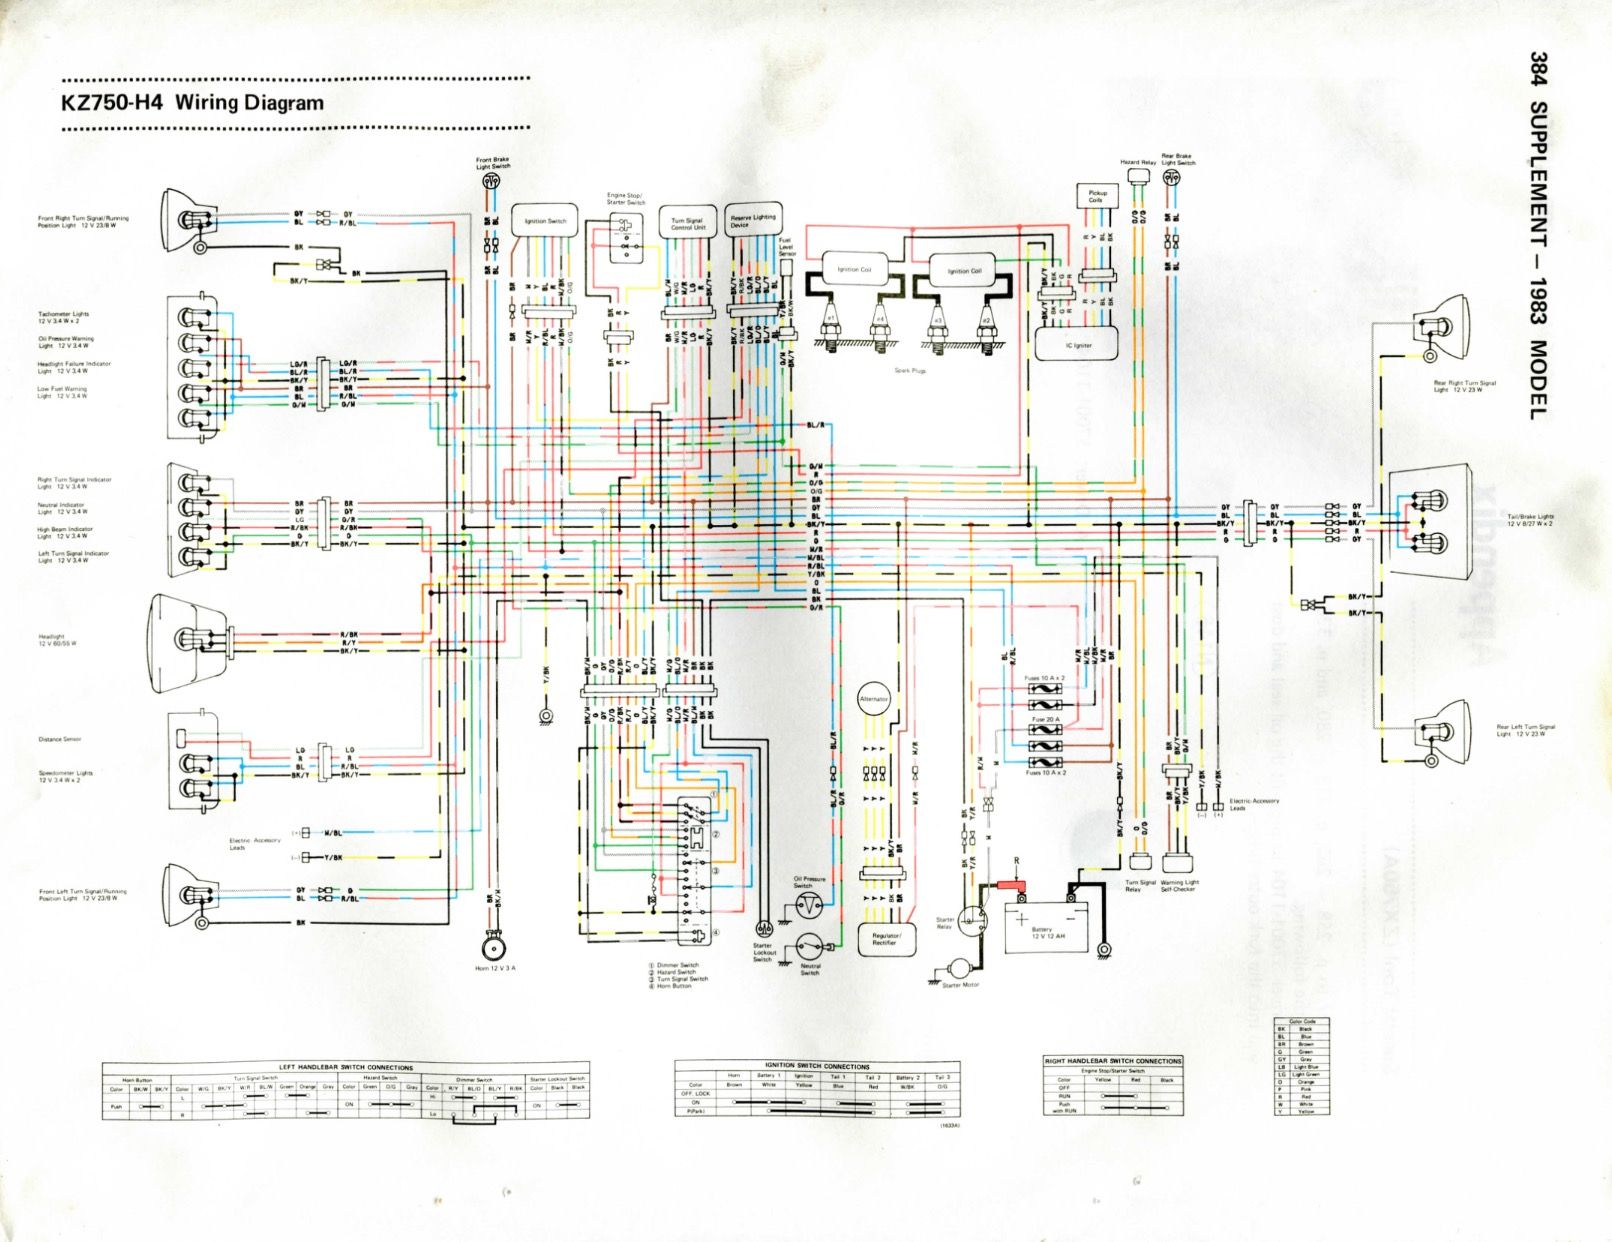 Sensational 1983 Kawasaki Kz750 H4 Ltd Wiring Diagram Highly Utilized During Wiring 101 Orsalhahutechinfo